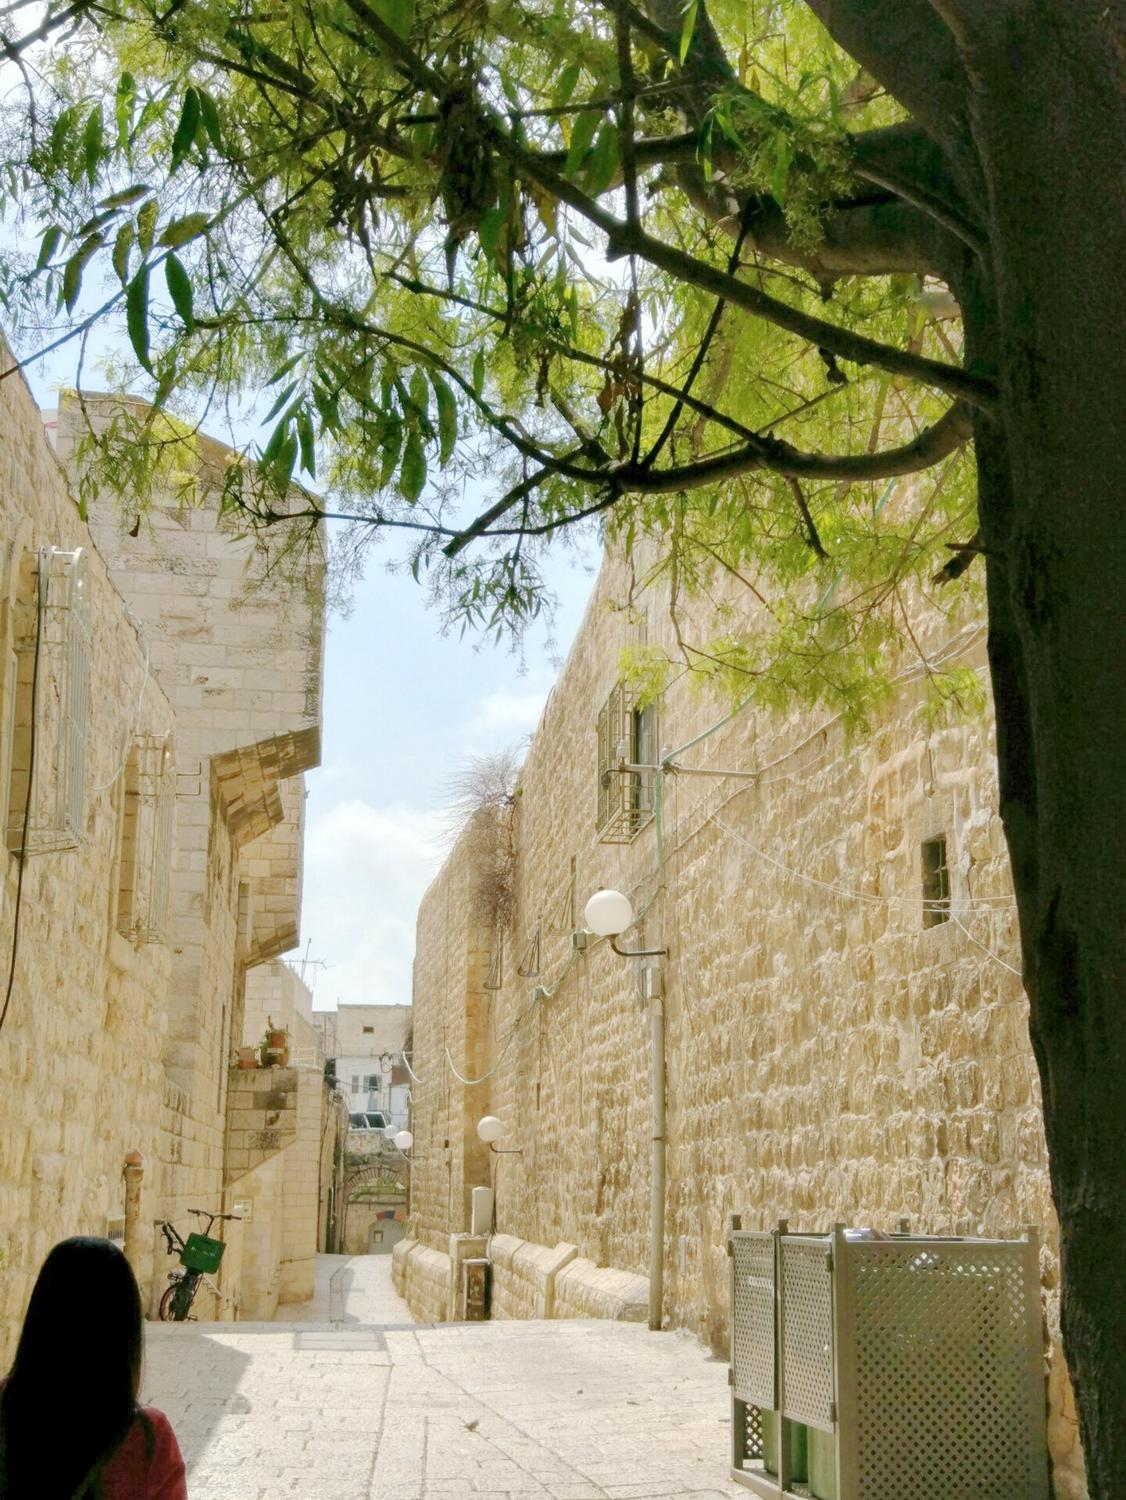 History of Jerusalem, armenian quarter, street view